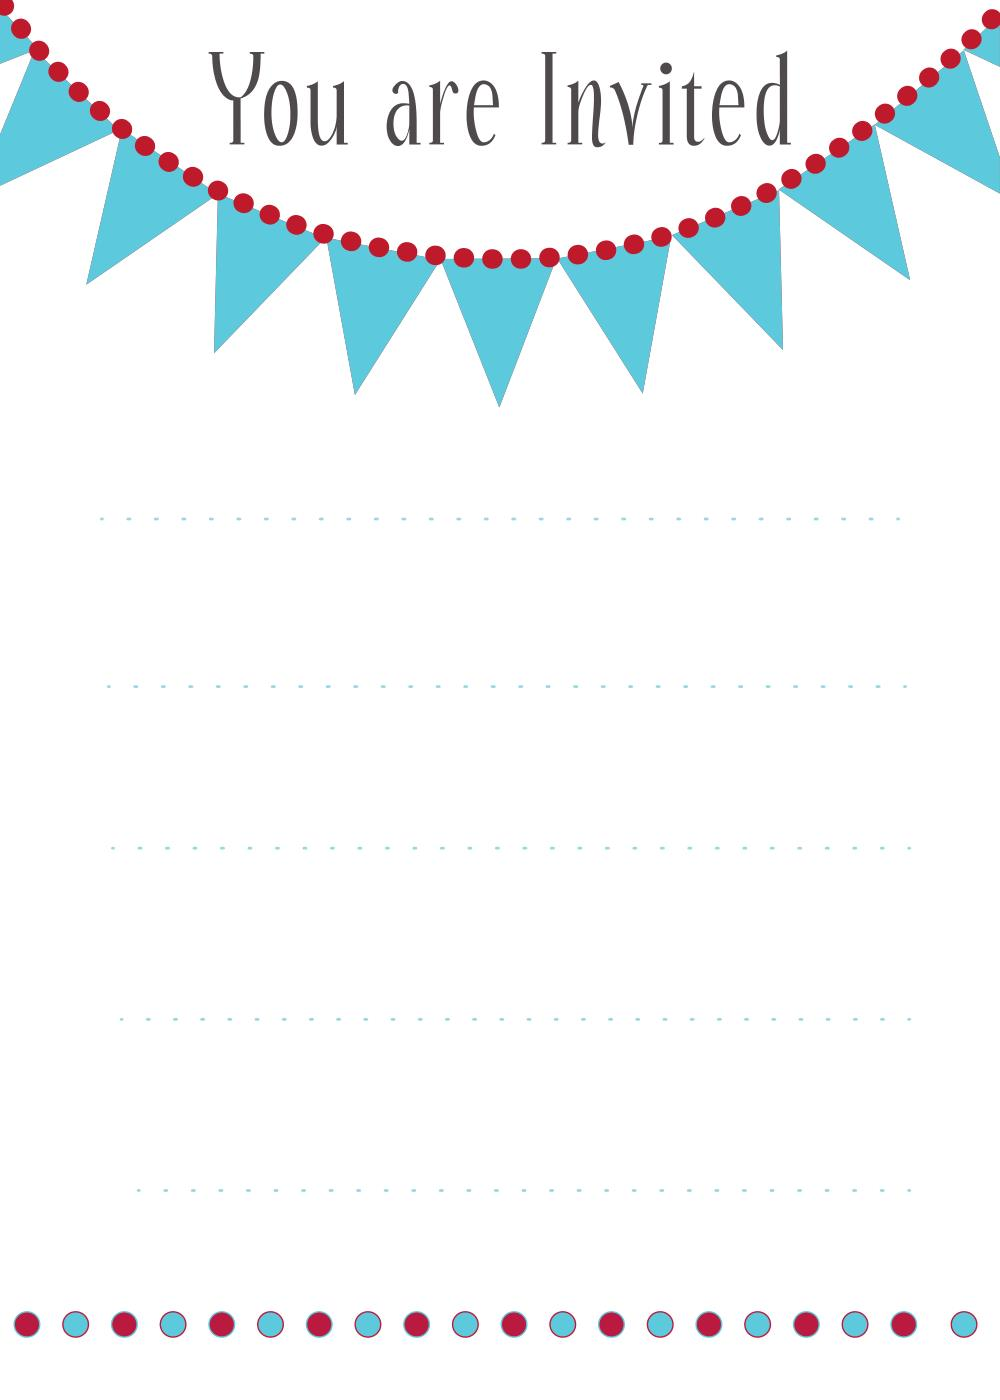 free printable birthday invitations for kids ; how-to-get-amazing-free-printable-tea-party-invitations-card-template